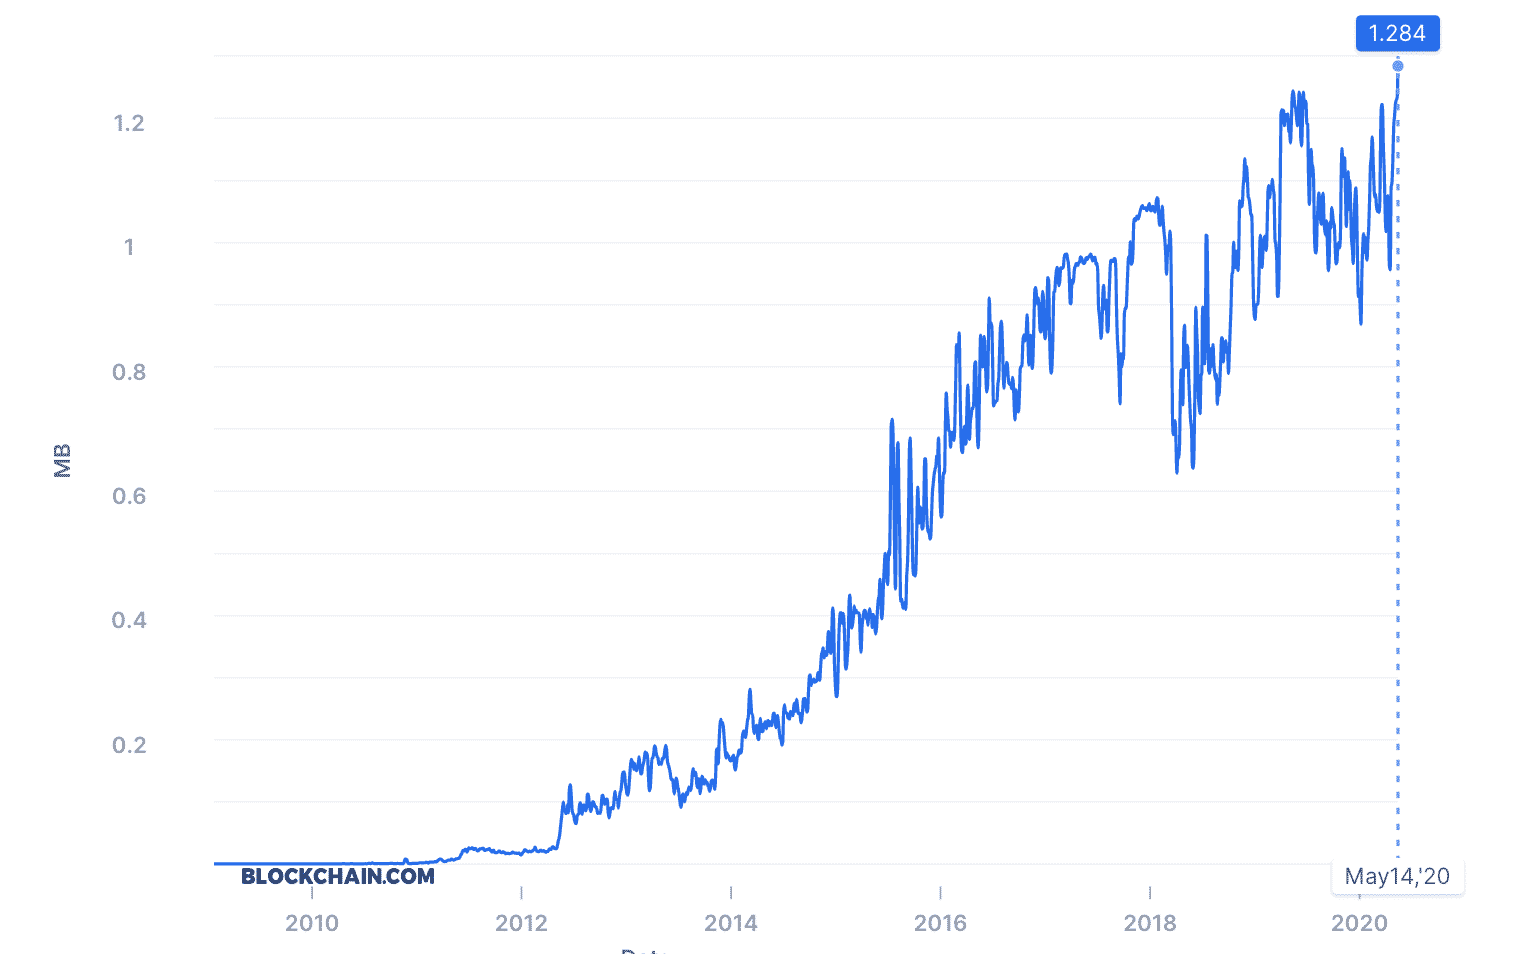 Bitcoin network usage reaches all time high, May 2020